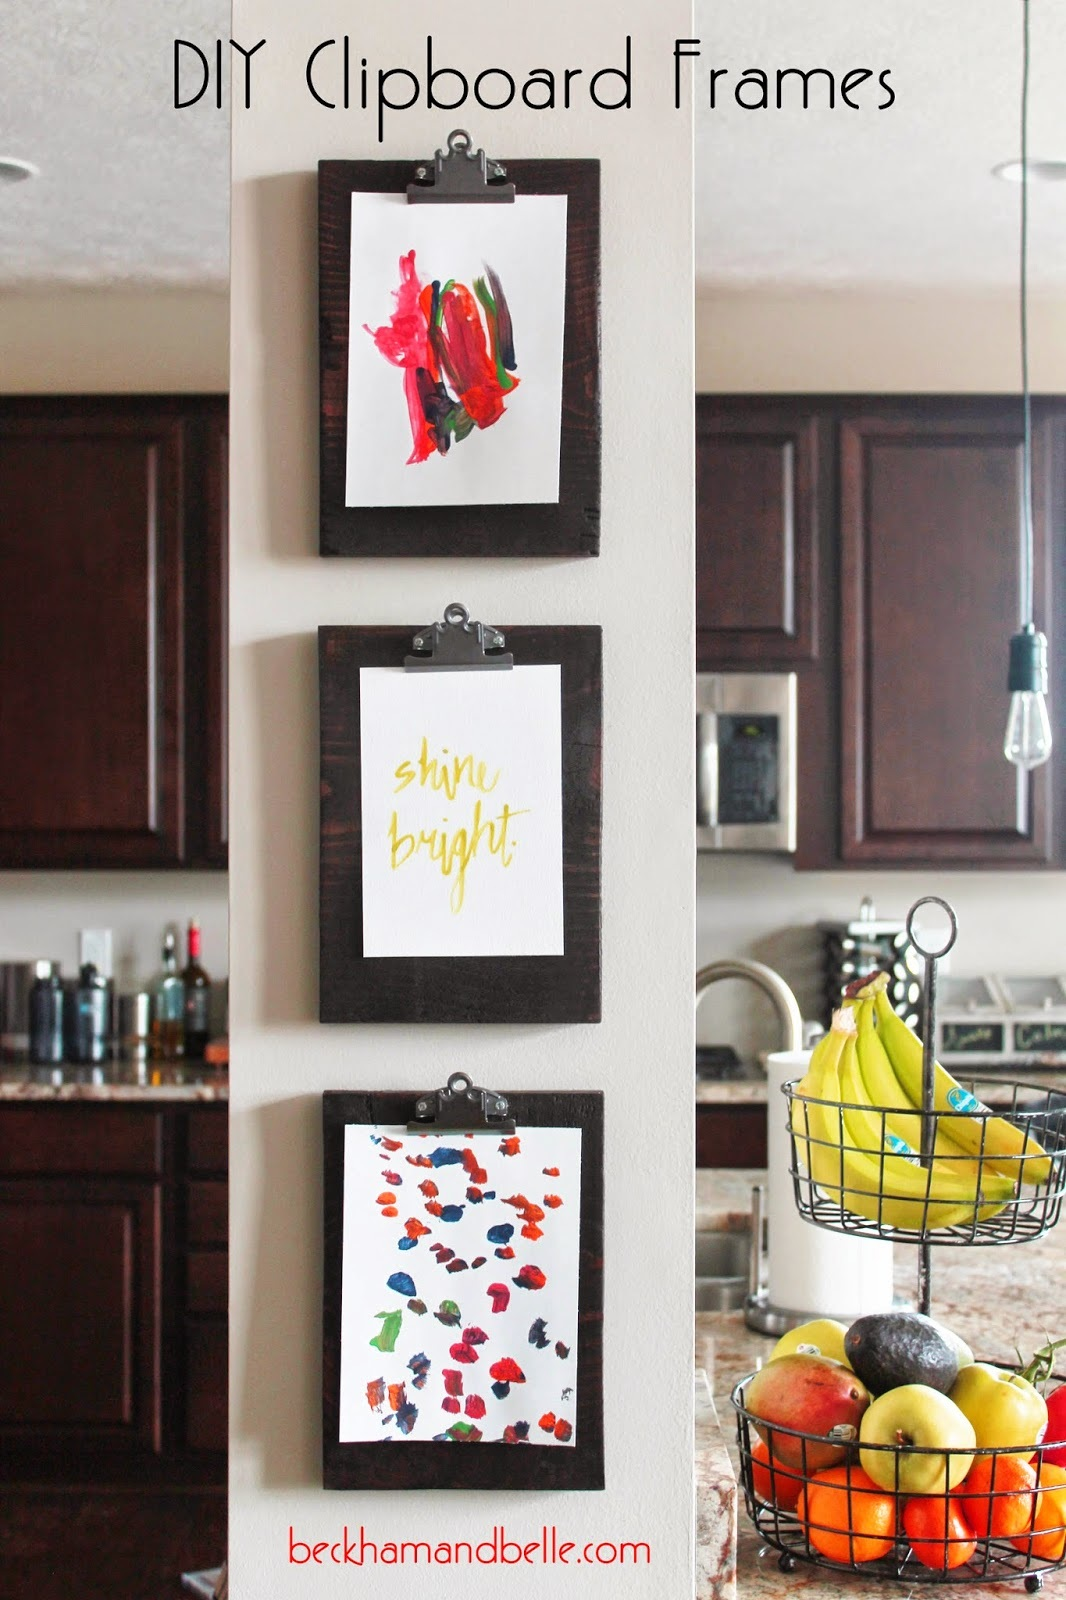 DIY Clipboard Frame Gallery a place other than your fridge to hang the kids' artwork...